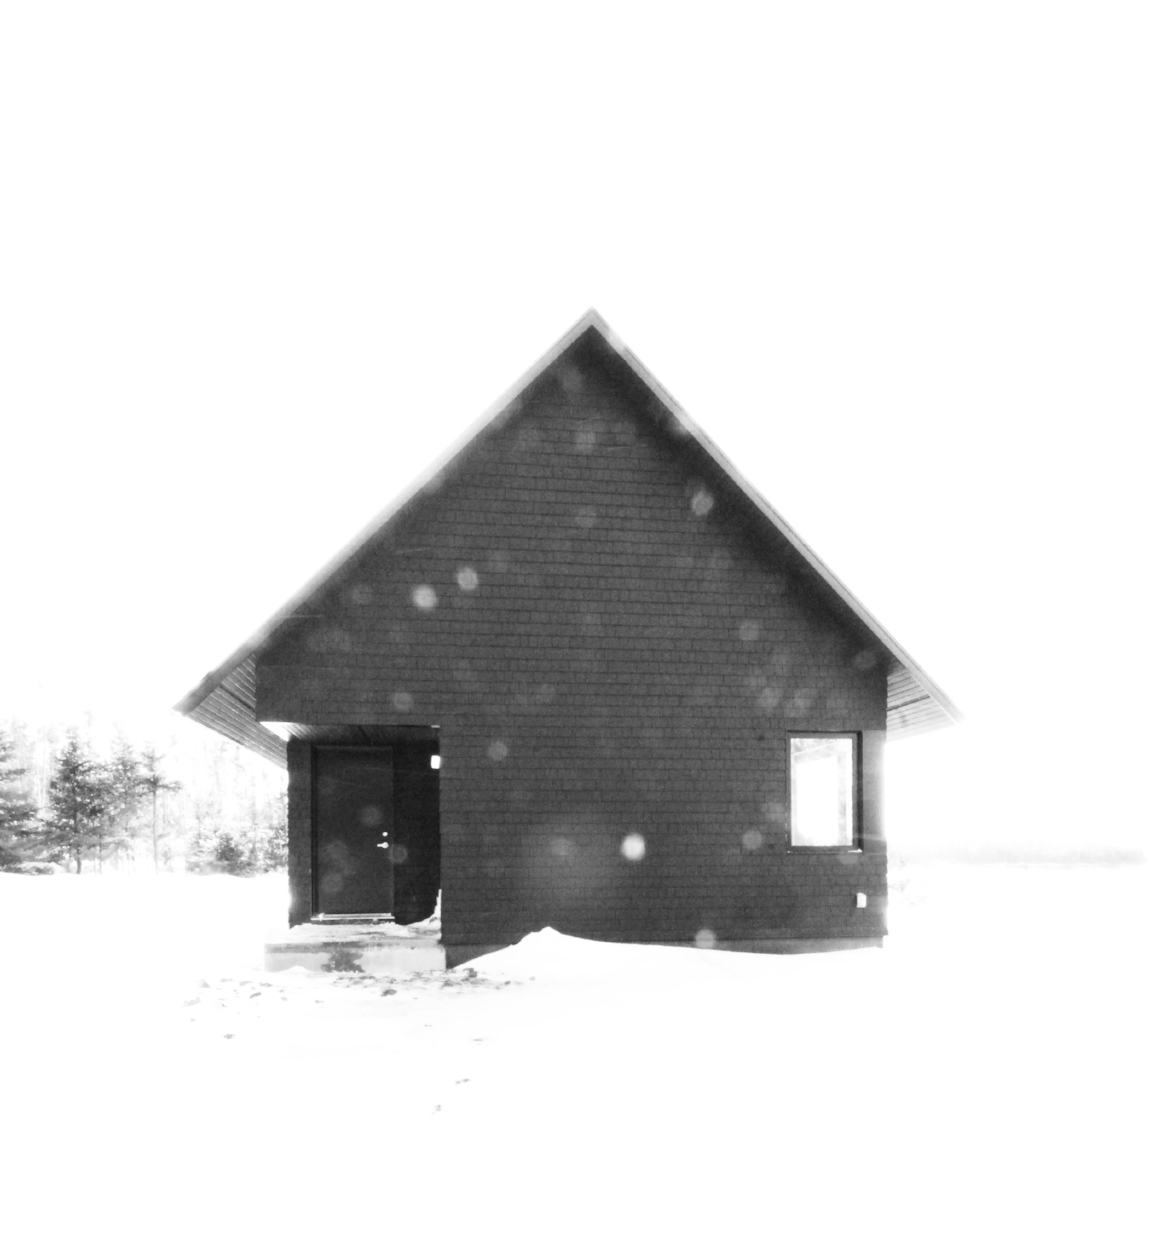 Image 1: Black Gables, a house in Louisdale, Nova Scotia, is made of a composition of black textures. Image by Omar Gandhi.